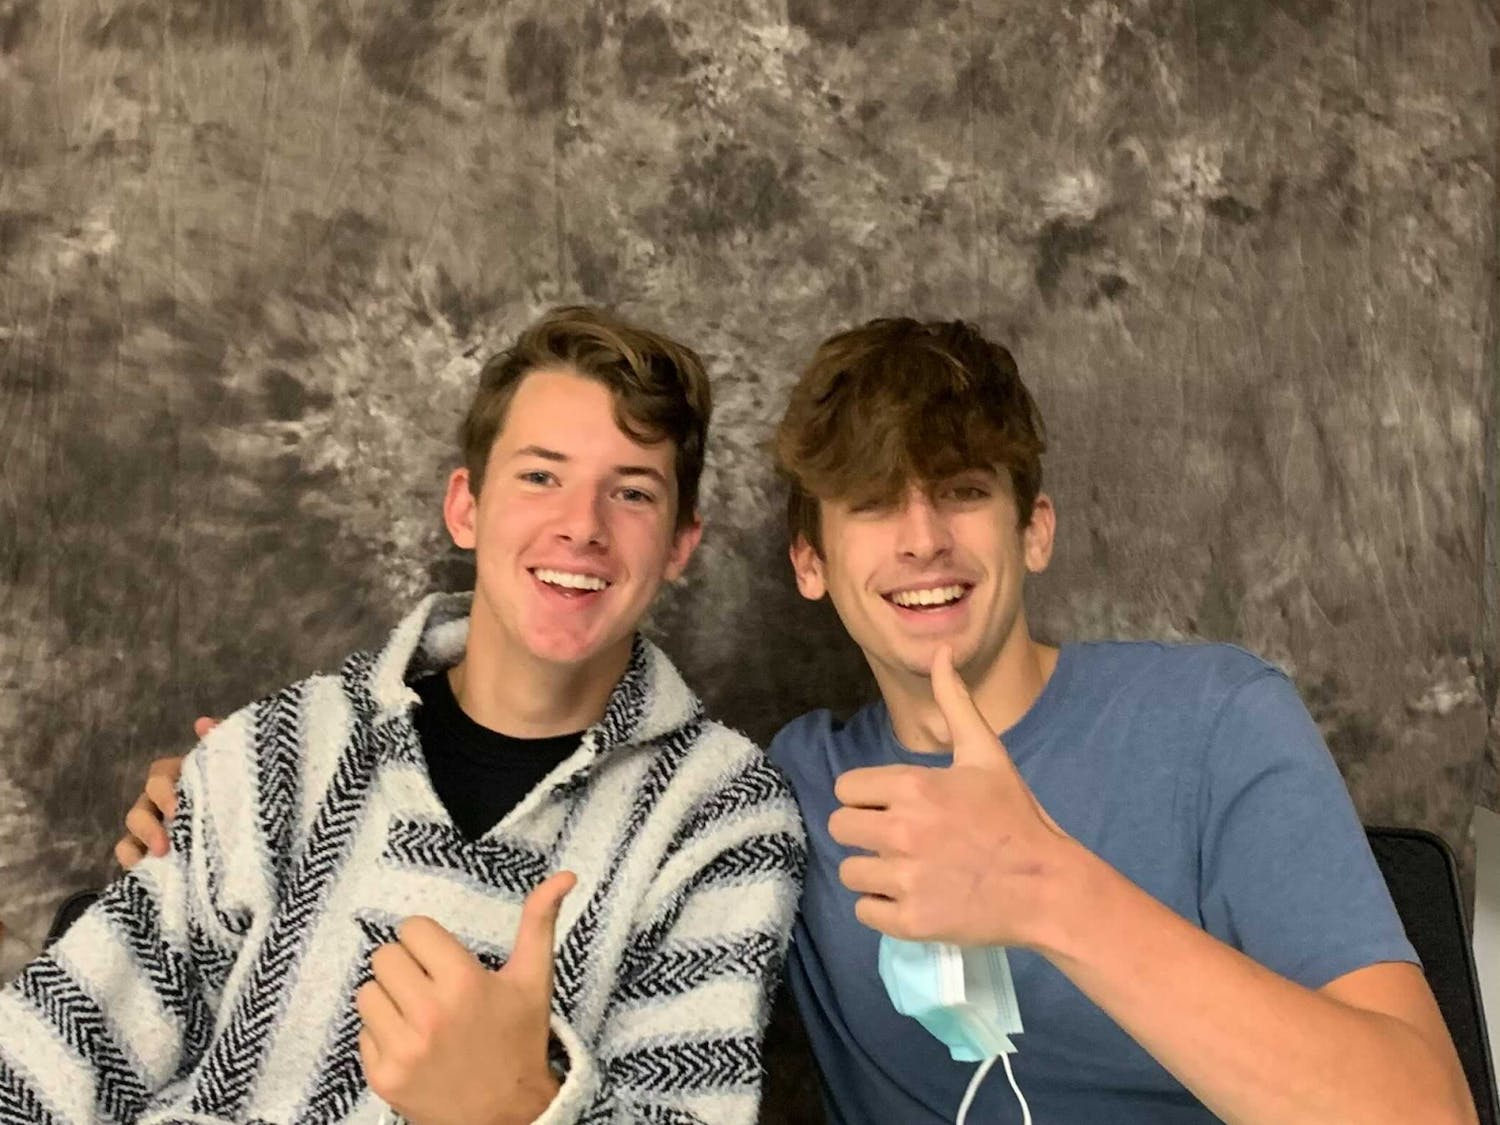 """Dubbed """"The Chair Guys"""" on TikTok, Hudson Alexander and Reilly Kasabri went """"viral"""" after posting a video of themselves performing chair-related skits around campus."""